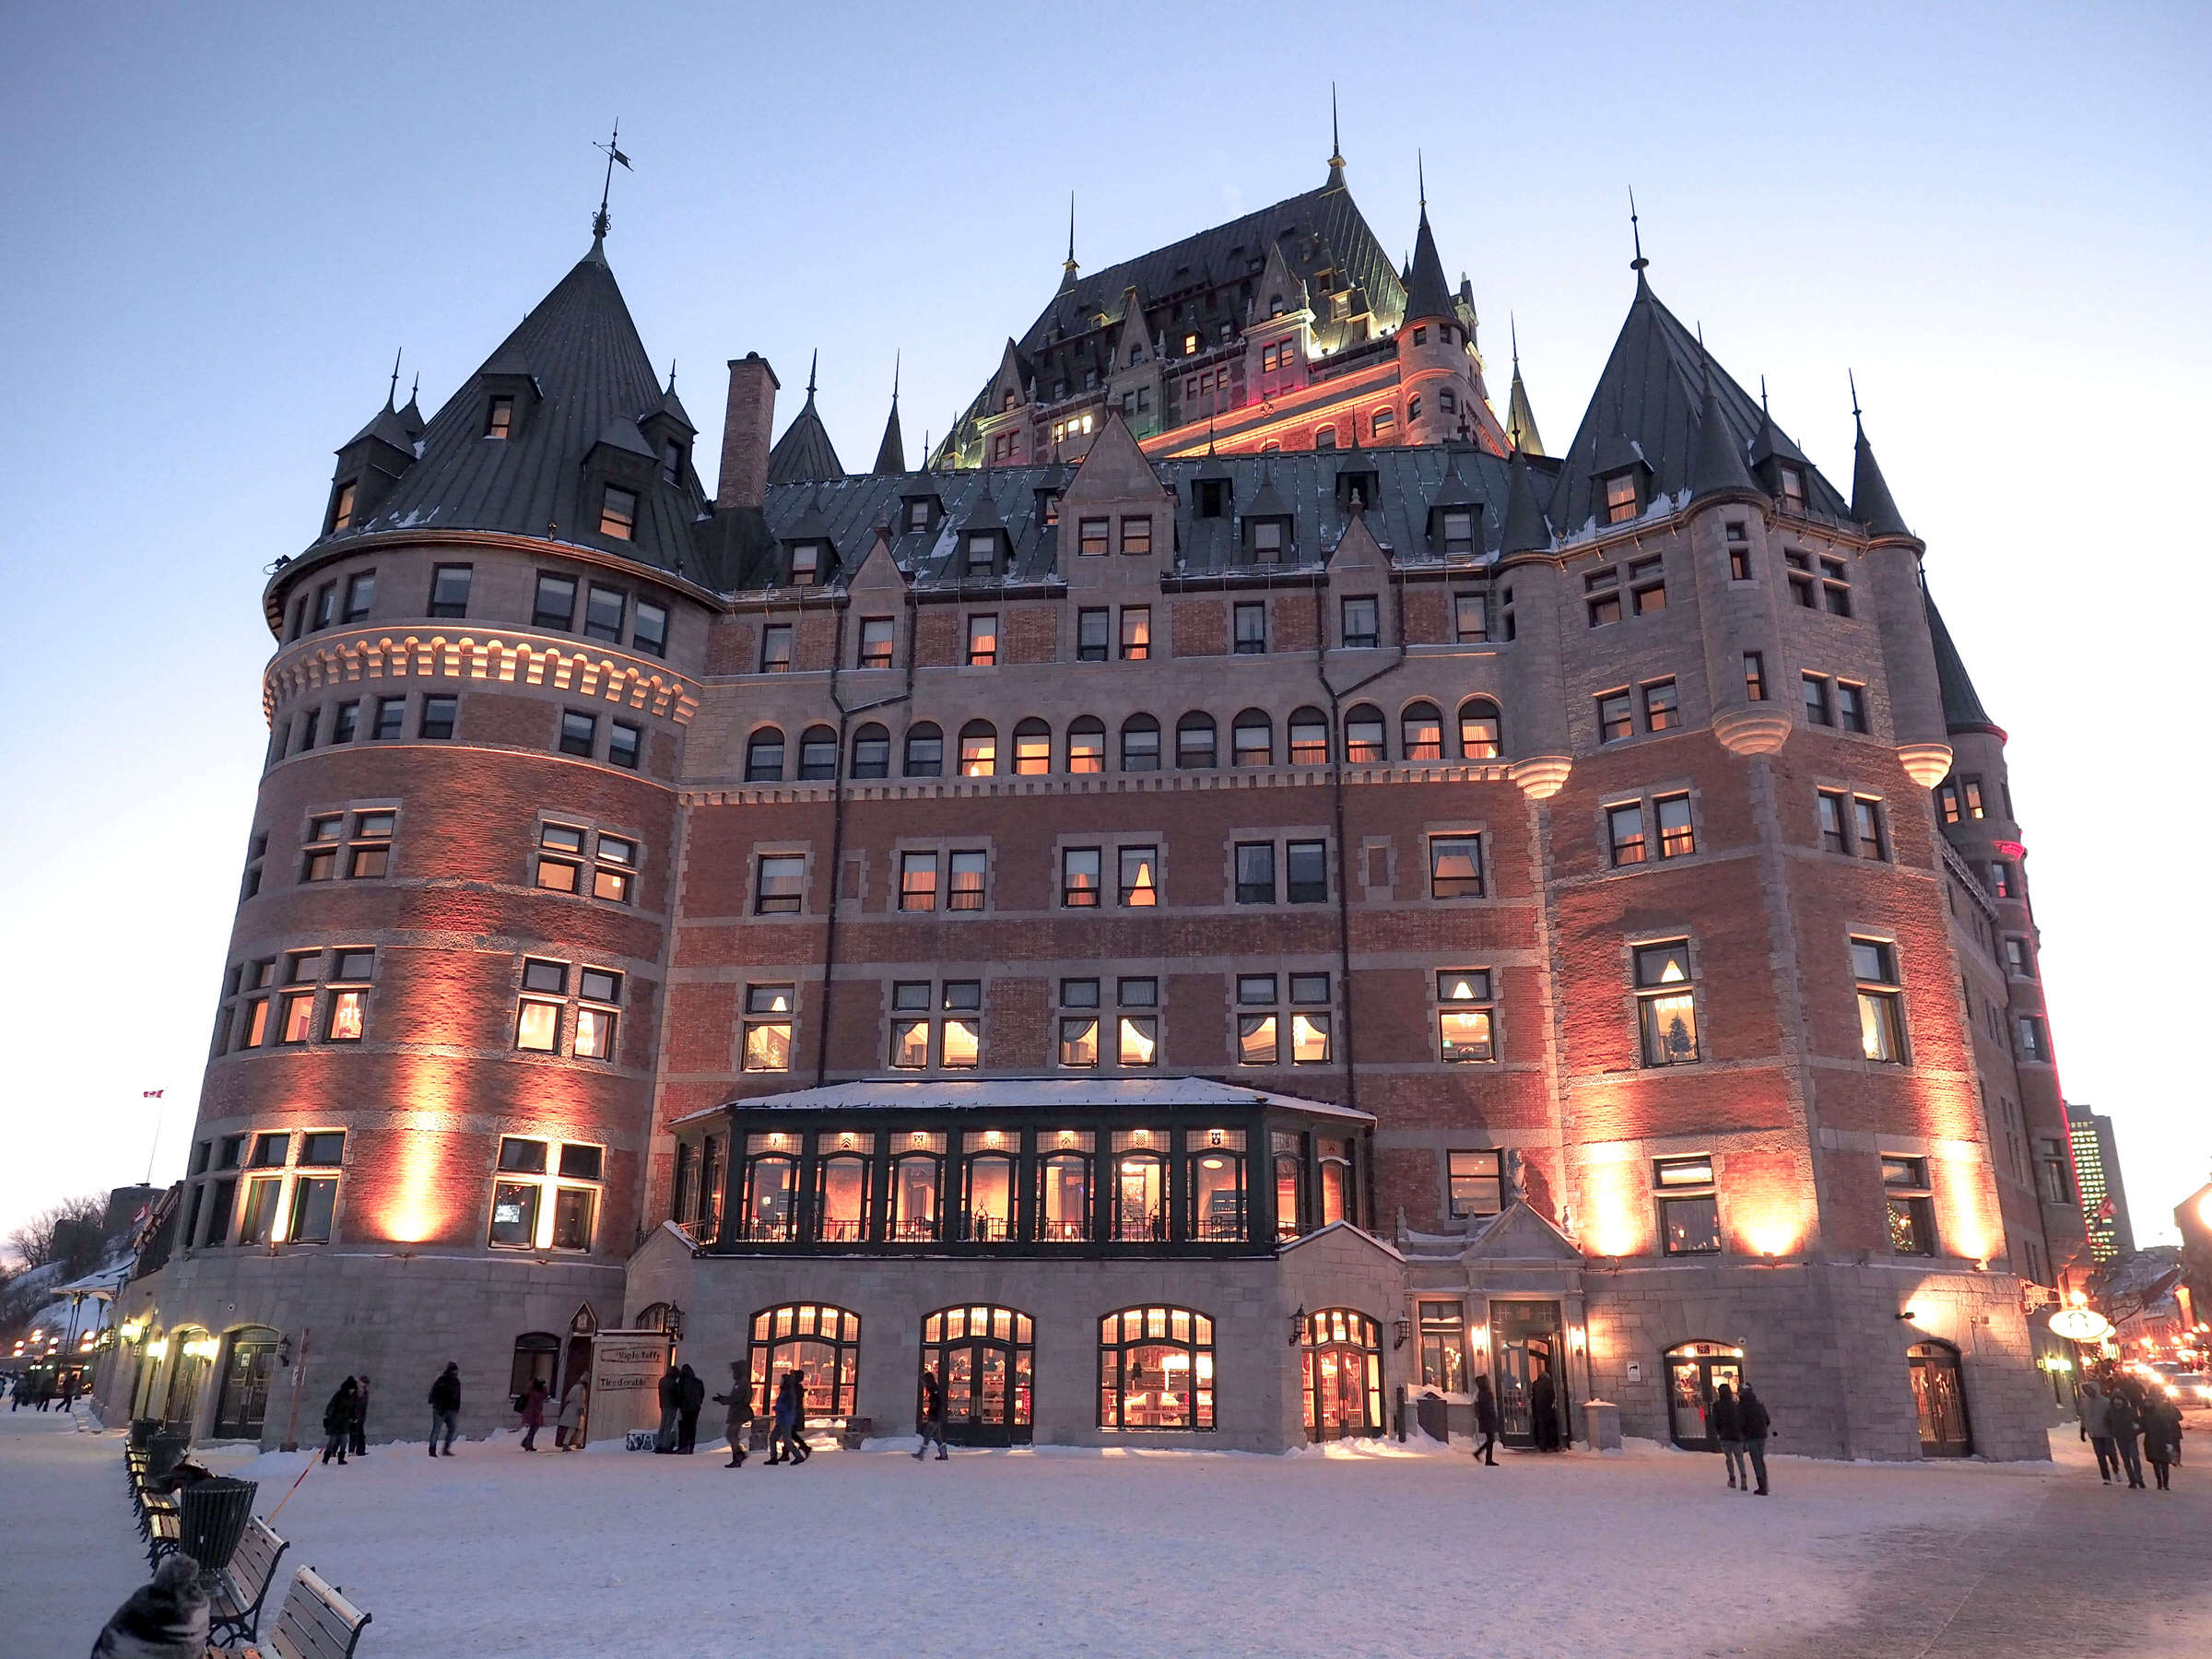 The Chateau Frontenac is not only the most iconic lodging in Quebec, but one of the most photographed hotels in the world! When you are looking for where to stay in Quebec City throughout your travels in Canada, make sure you experience this historic hotel first hand. #canadatravel #hotelsquebeccity #castle #wheretostay